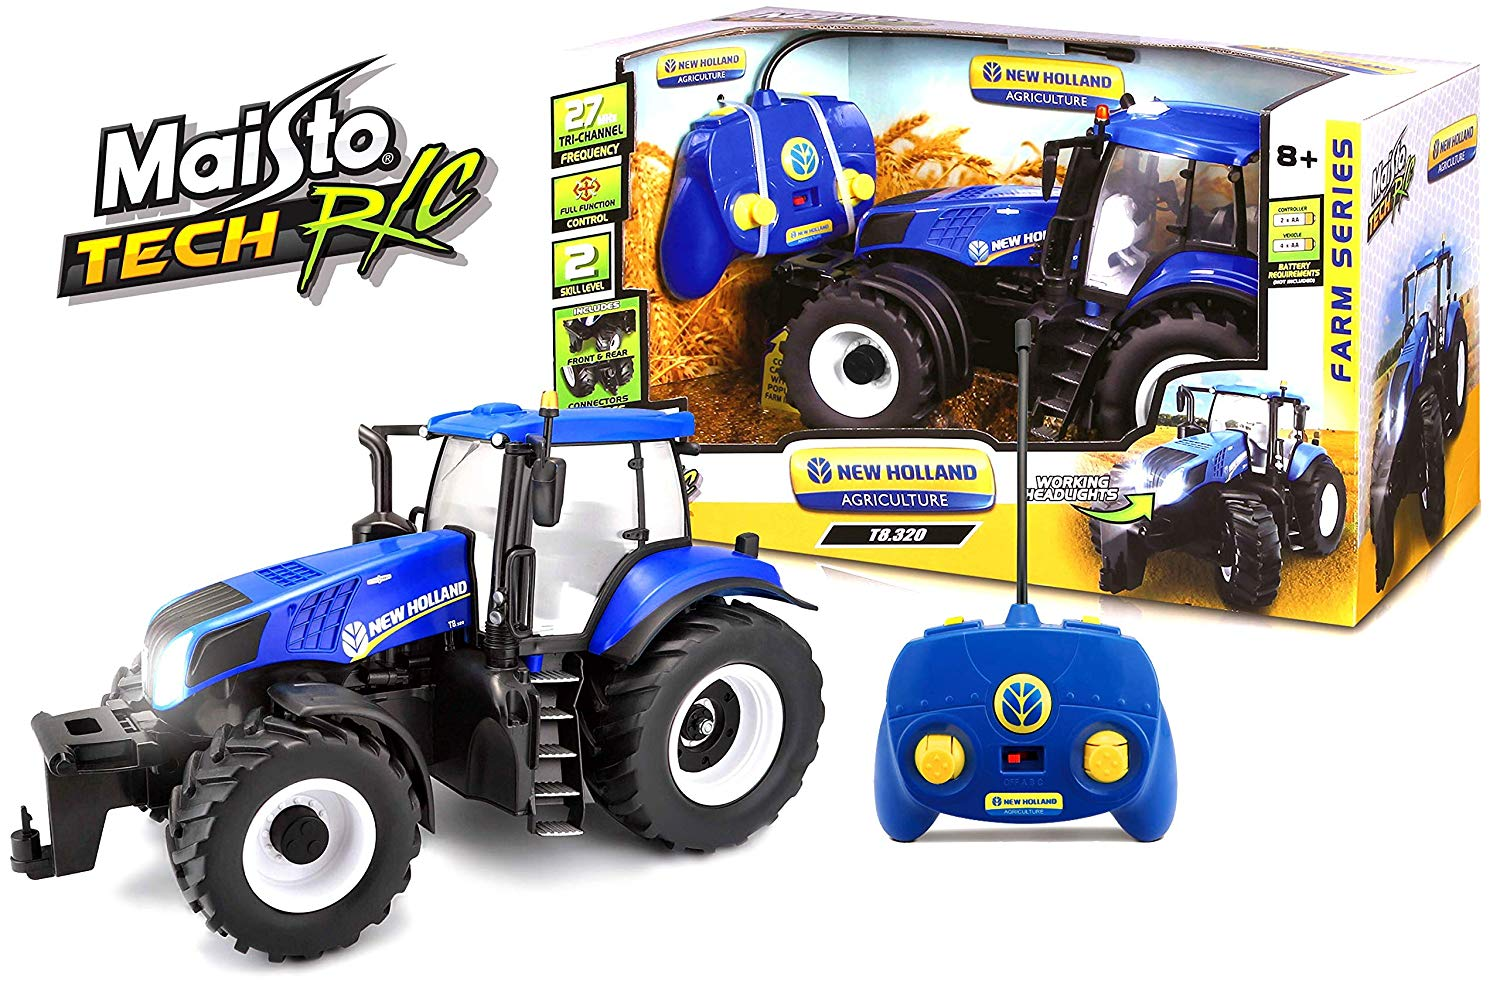 Maisto New Holland R/C Tractor 1:16